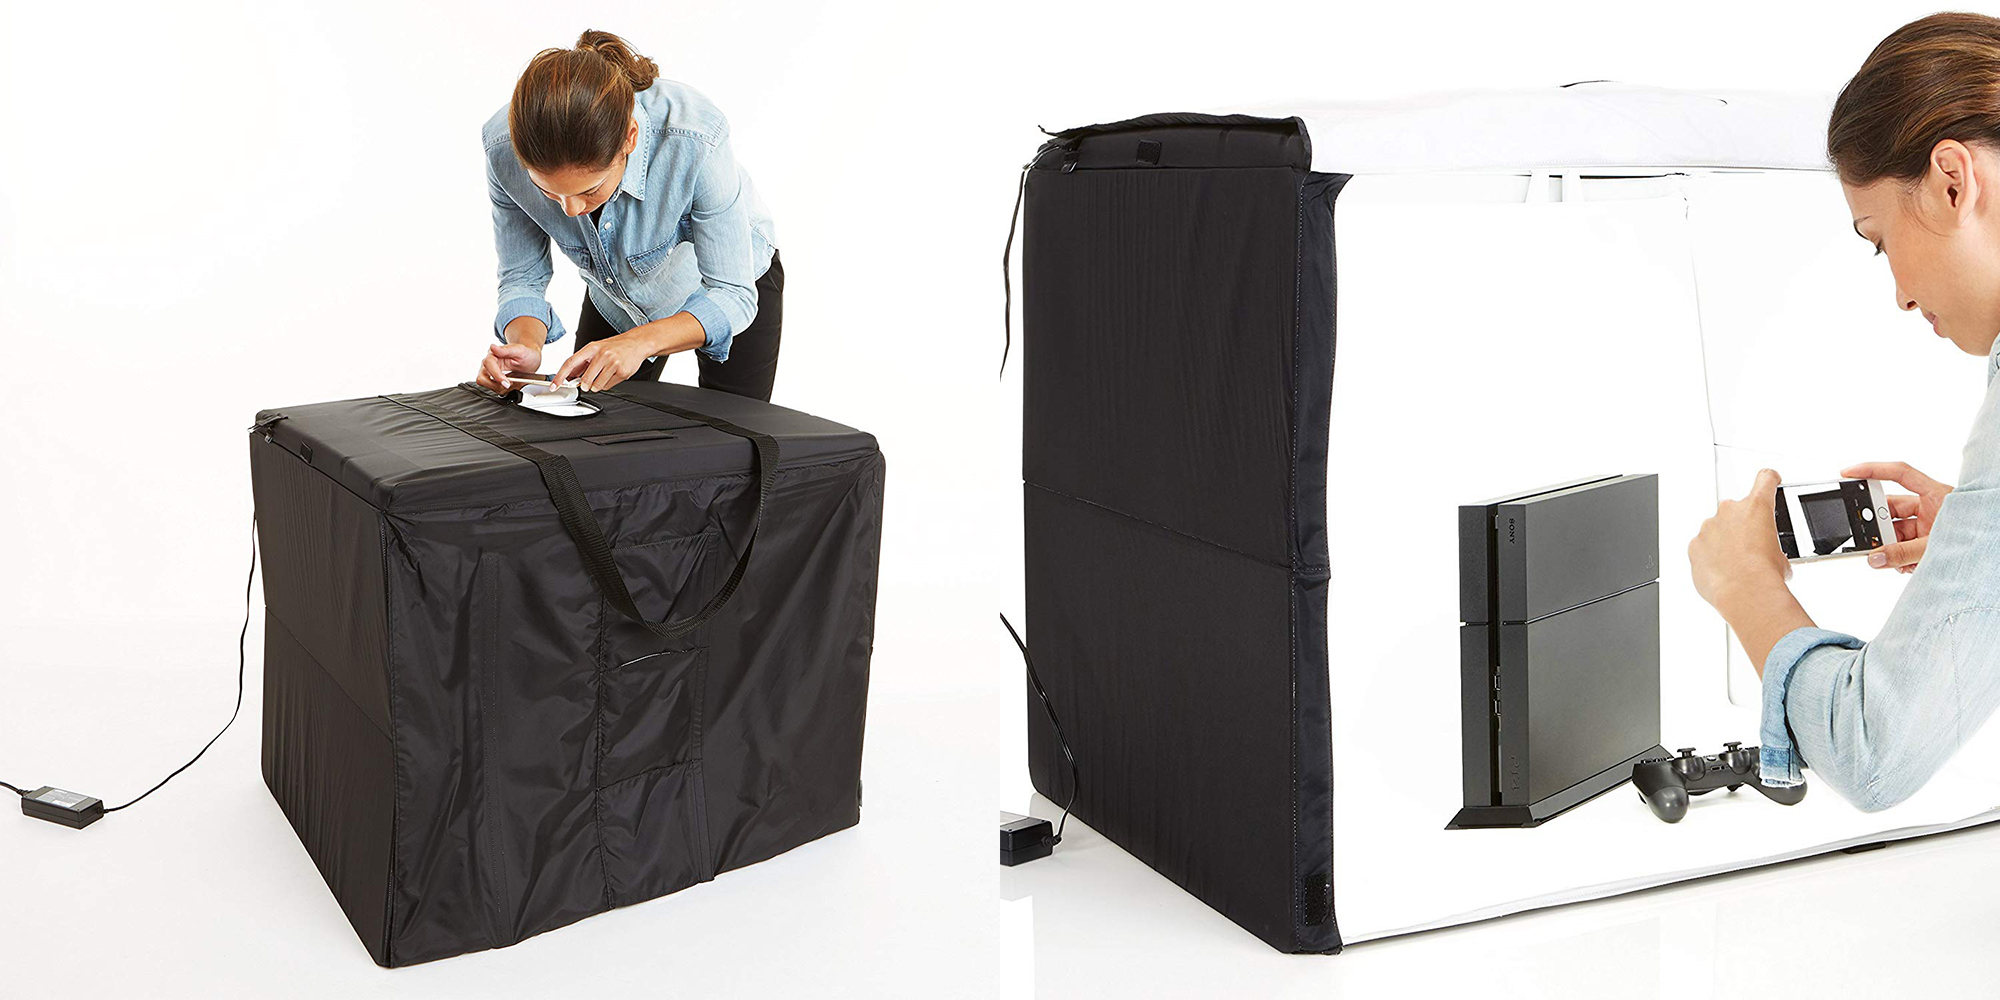 Take pro-grade images with the AmazonBasics Portable Photo Studio: $119.50 (All-time low)